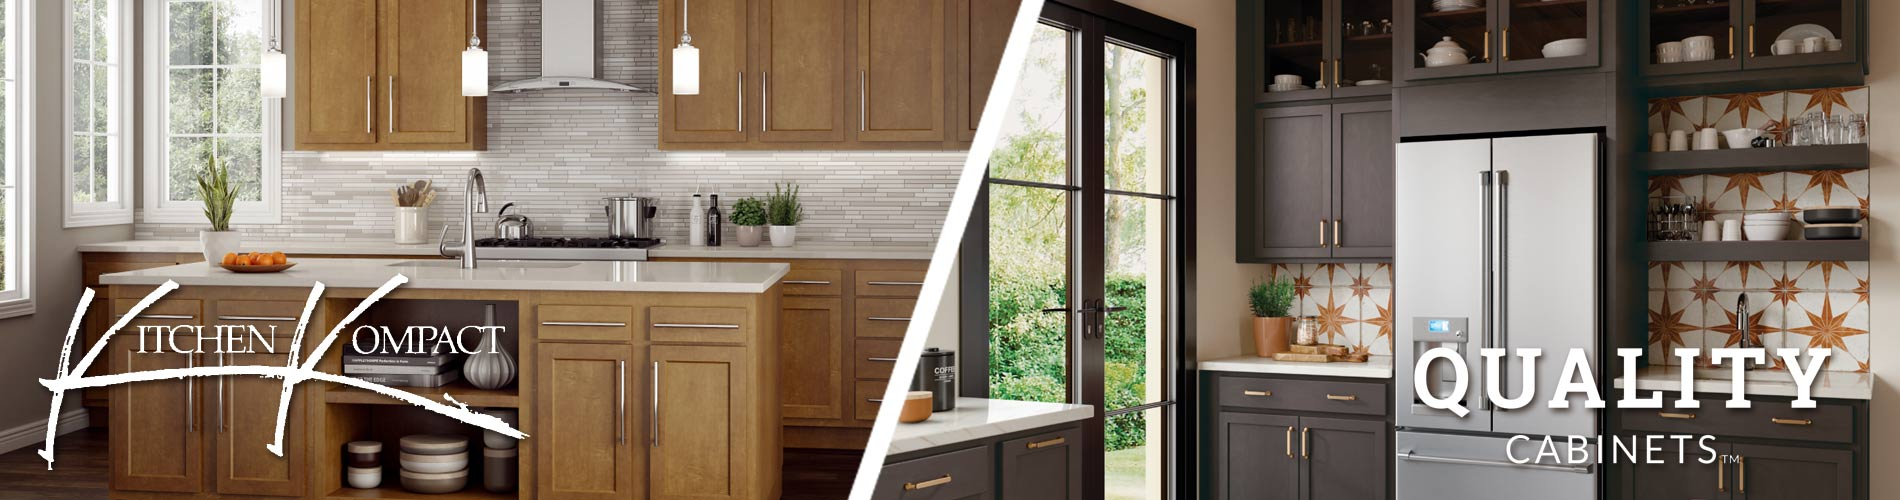 Kitchen Kompact and Quality Cabinets